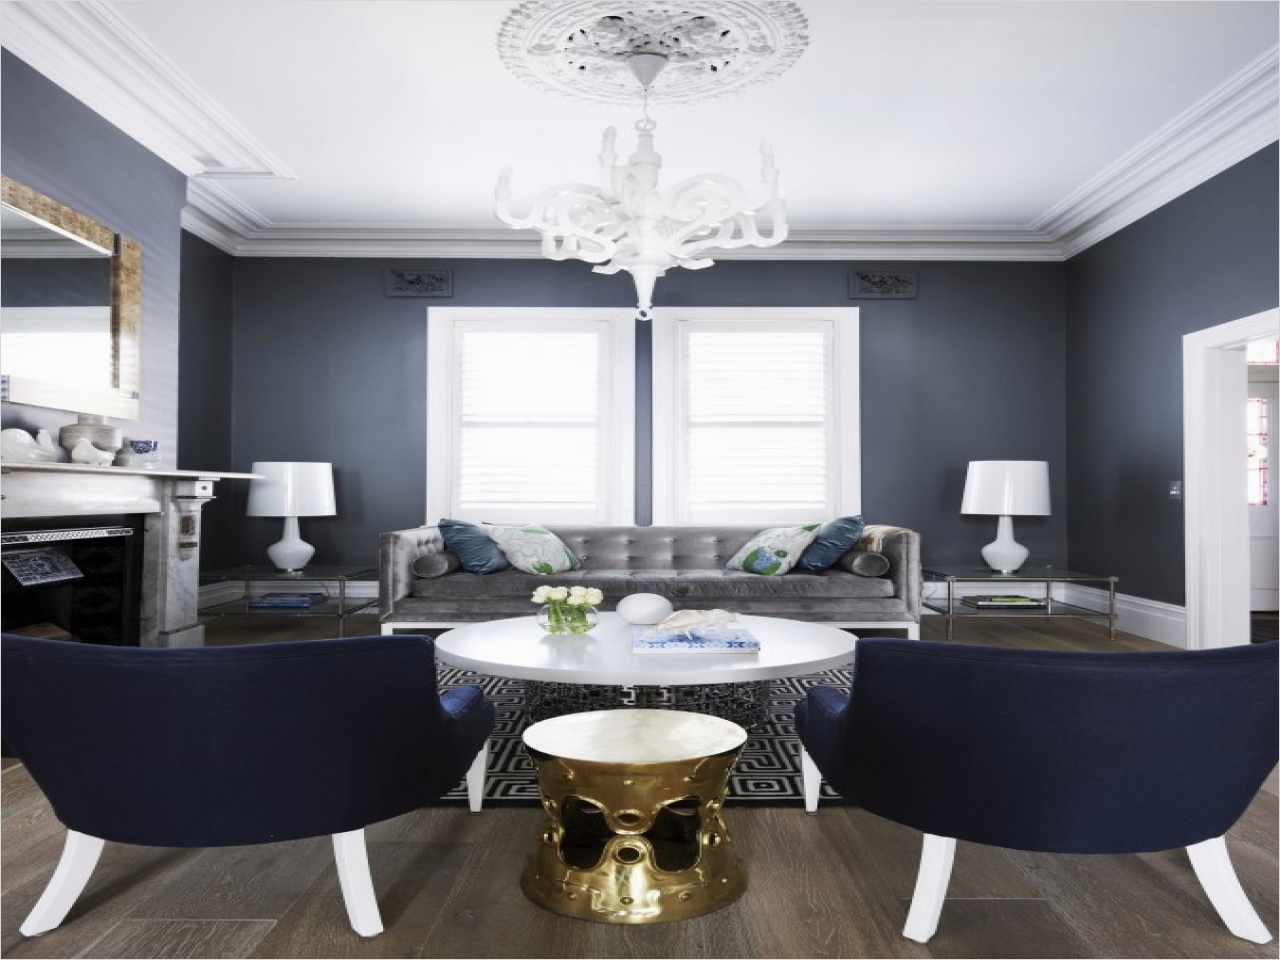 41 Amazing Navy Blue and White Living Room 29 Old World French Decor Navy Blue and Gray Grey White and Blue Living Room Living Room 8